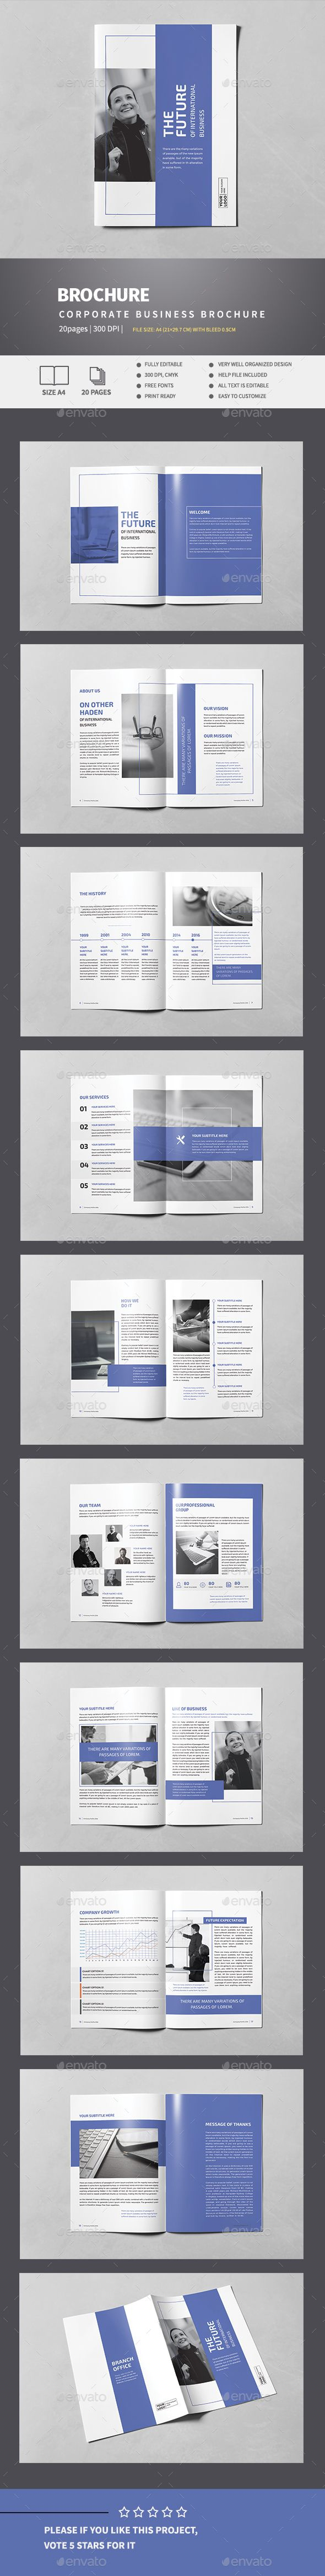 Indigo Business Brochure Template InDesign INDD. Download here: http://graphicriver.net/item/indigo-business-brochure/15066765?ref=ksioks